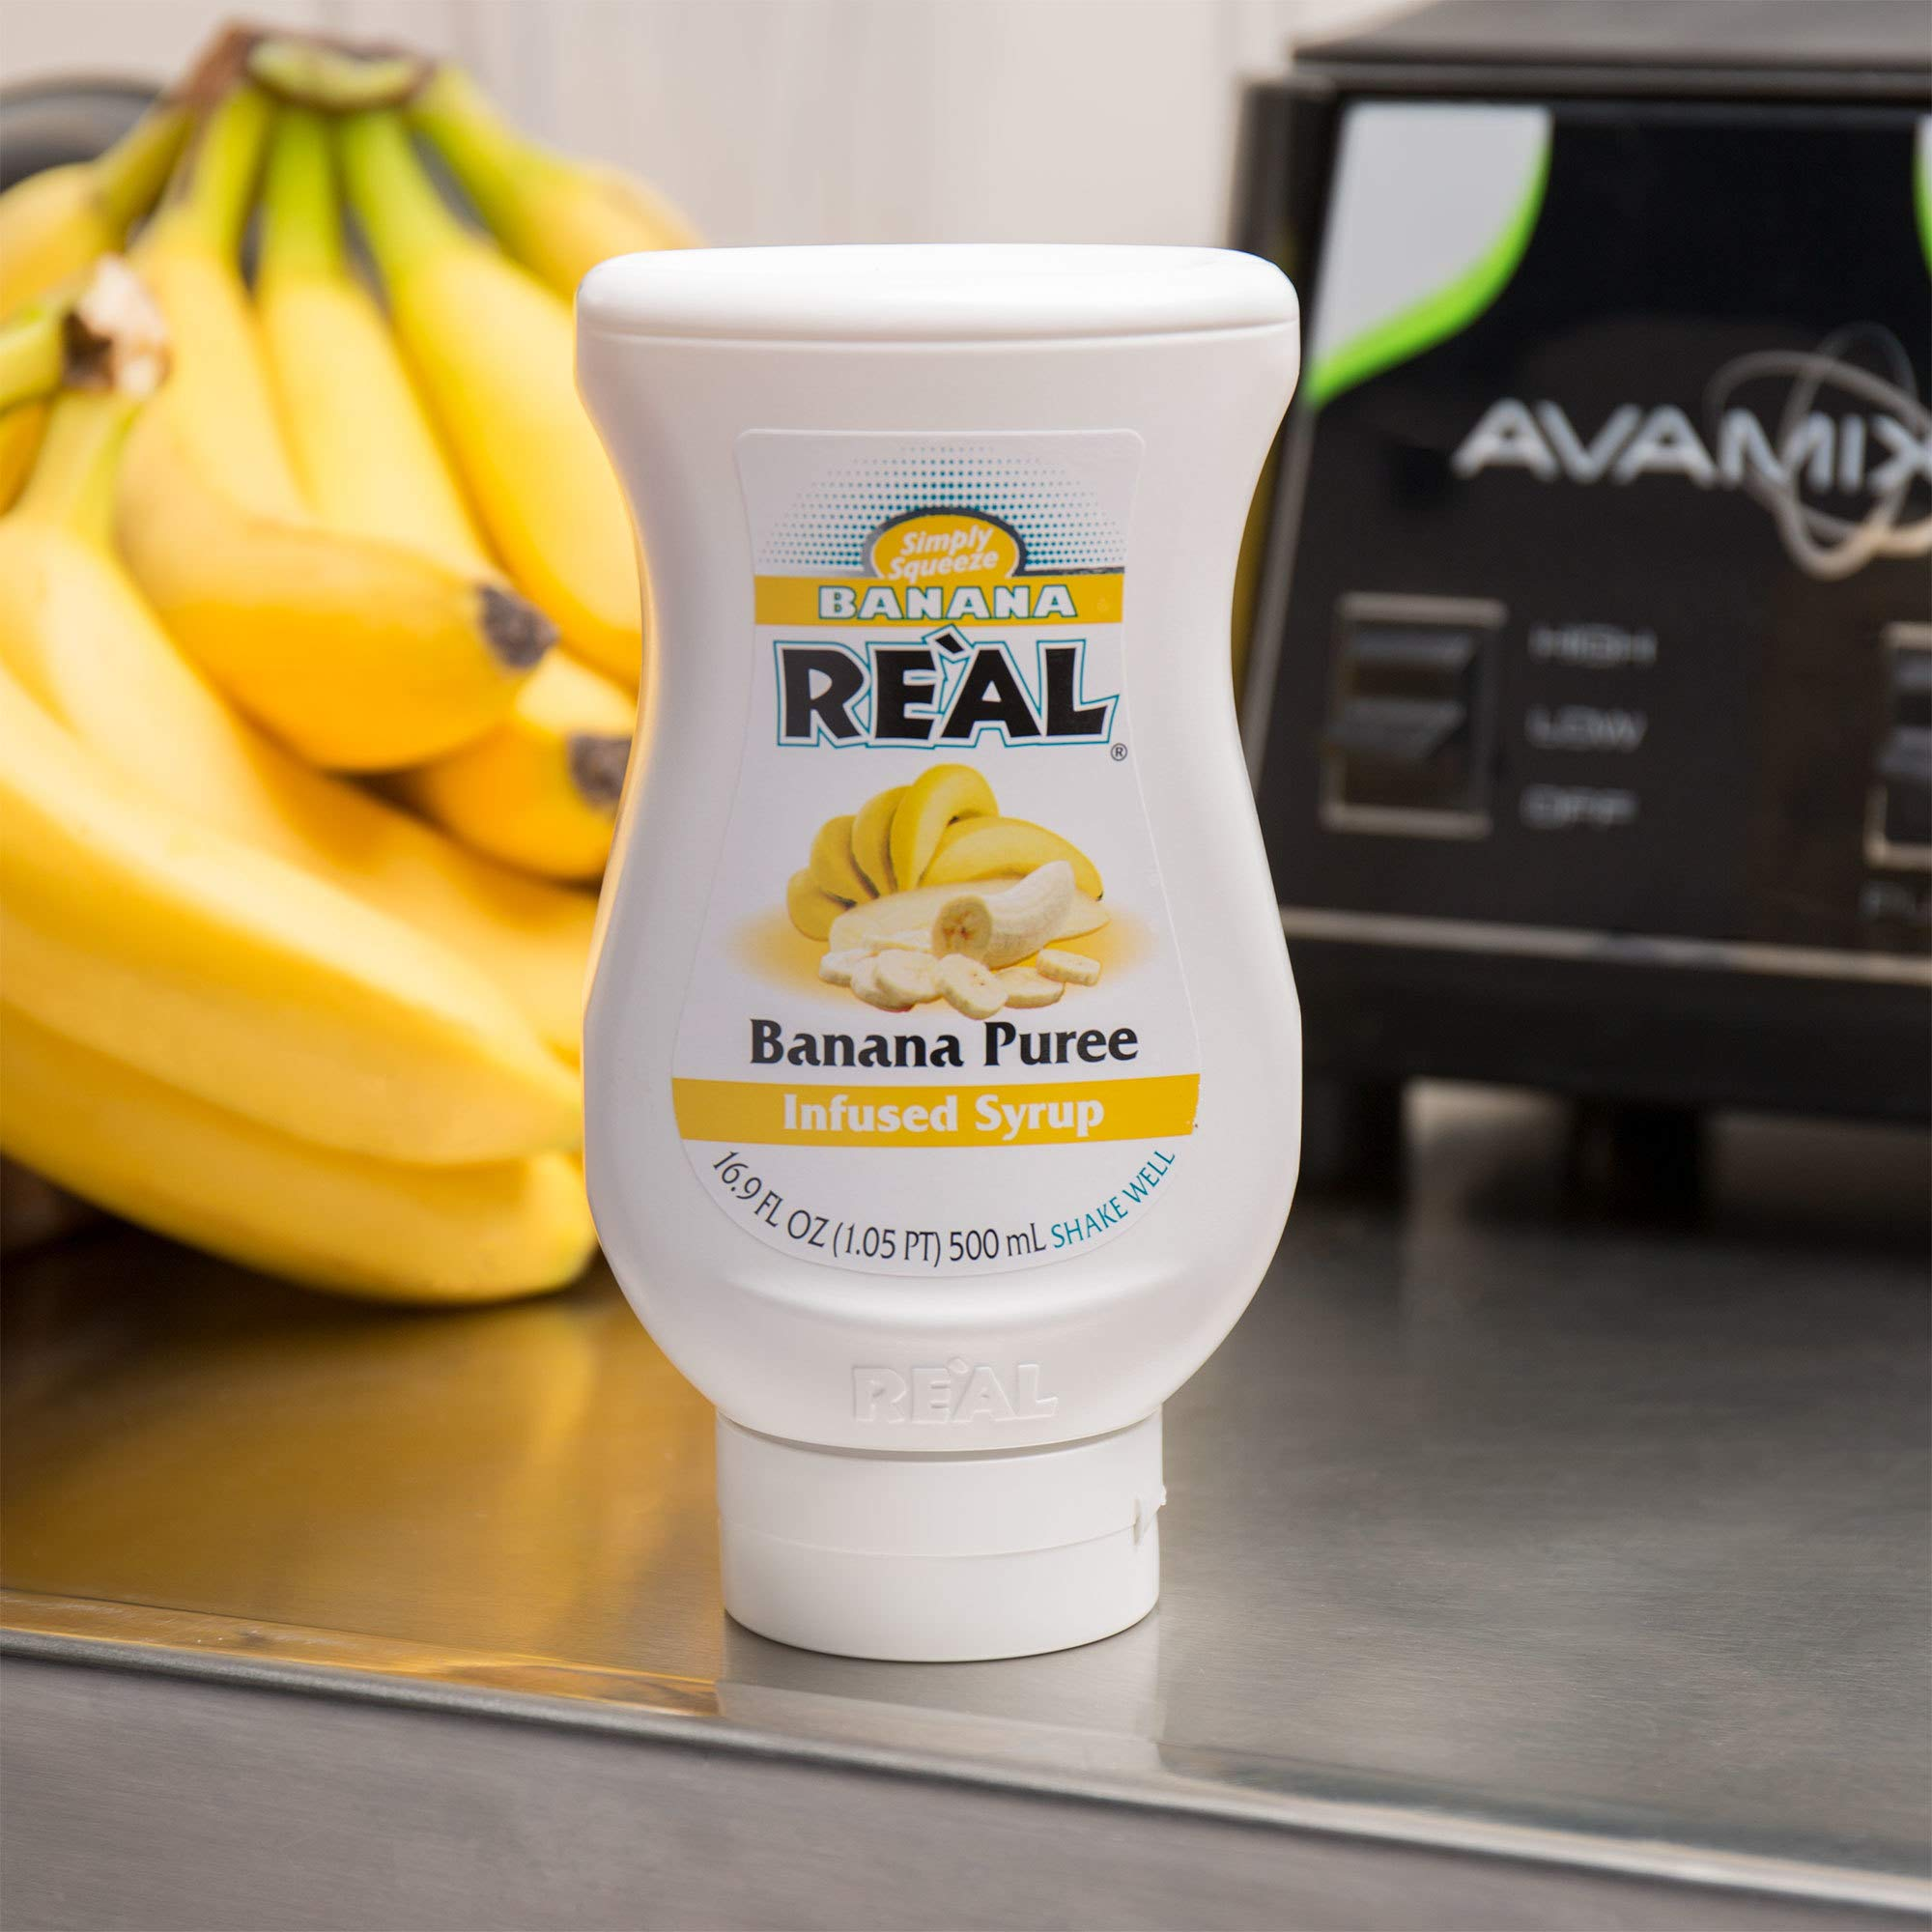 Banana Reàl, Banana Puree Infused Syrup, 16.9 FL OZ Squeezable Bottle | Pack of 12 by Reàl (Image #2)